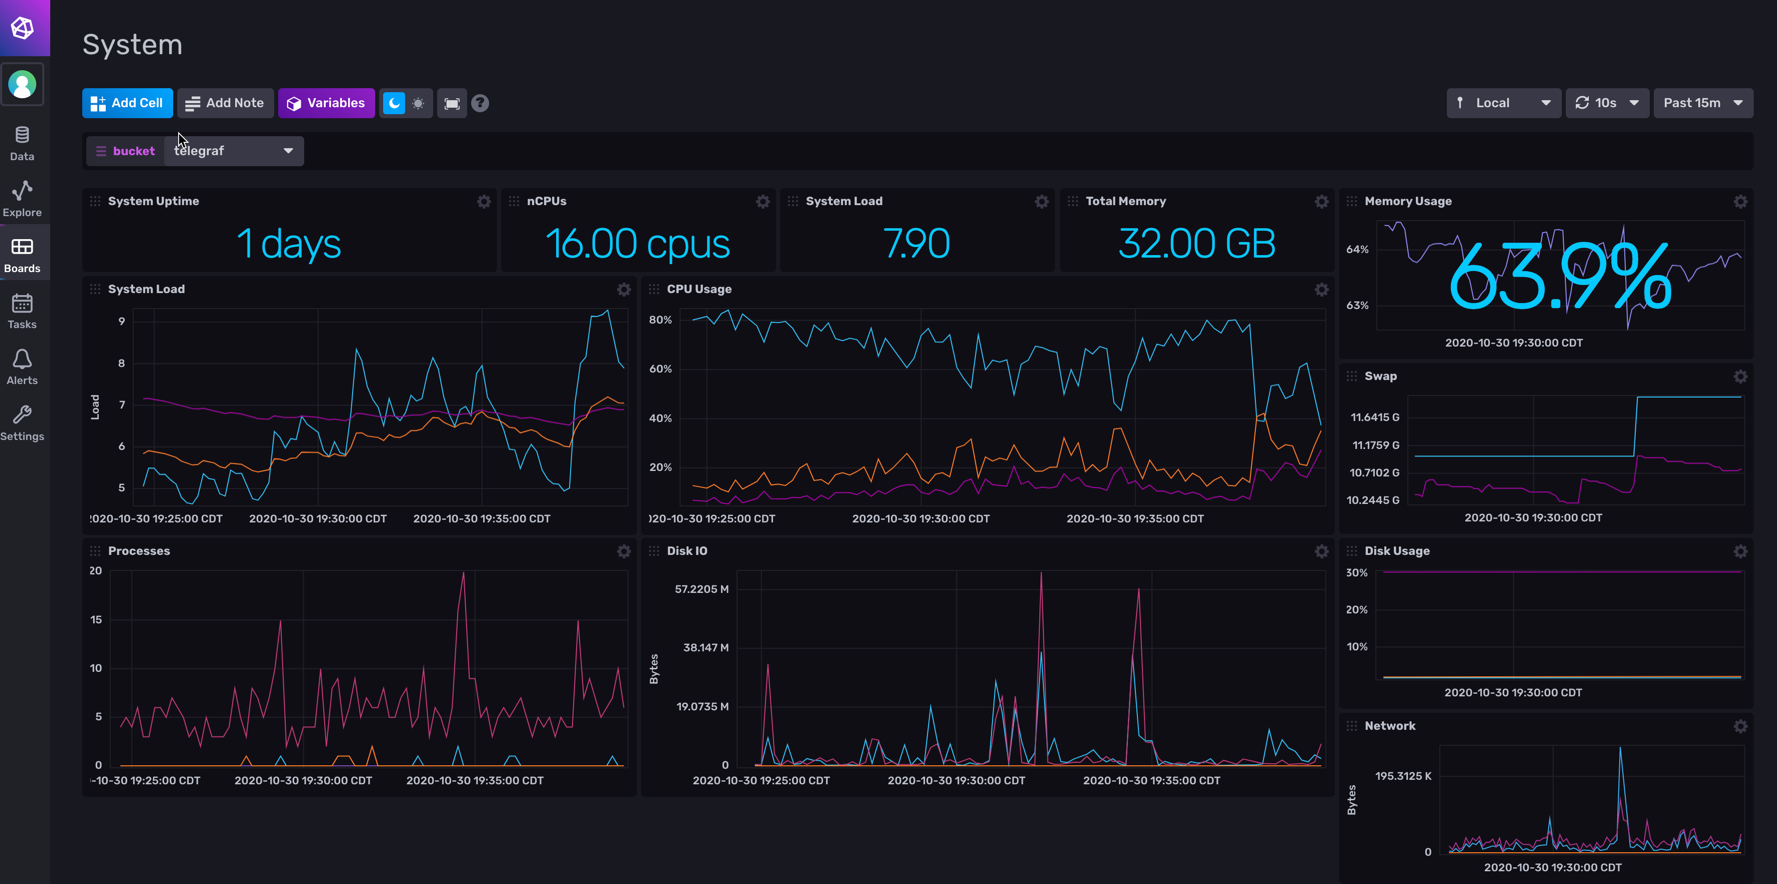 Influx System Dashboard